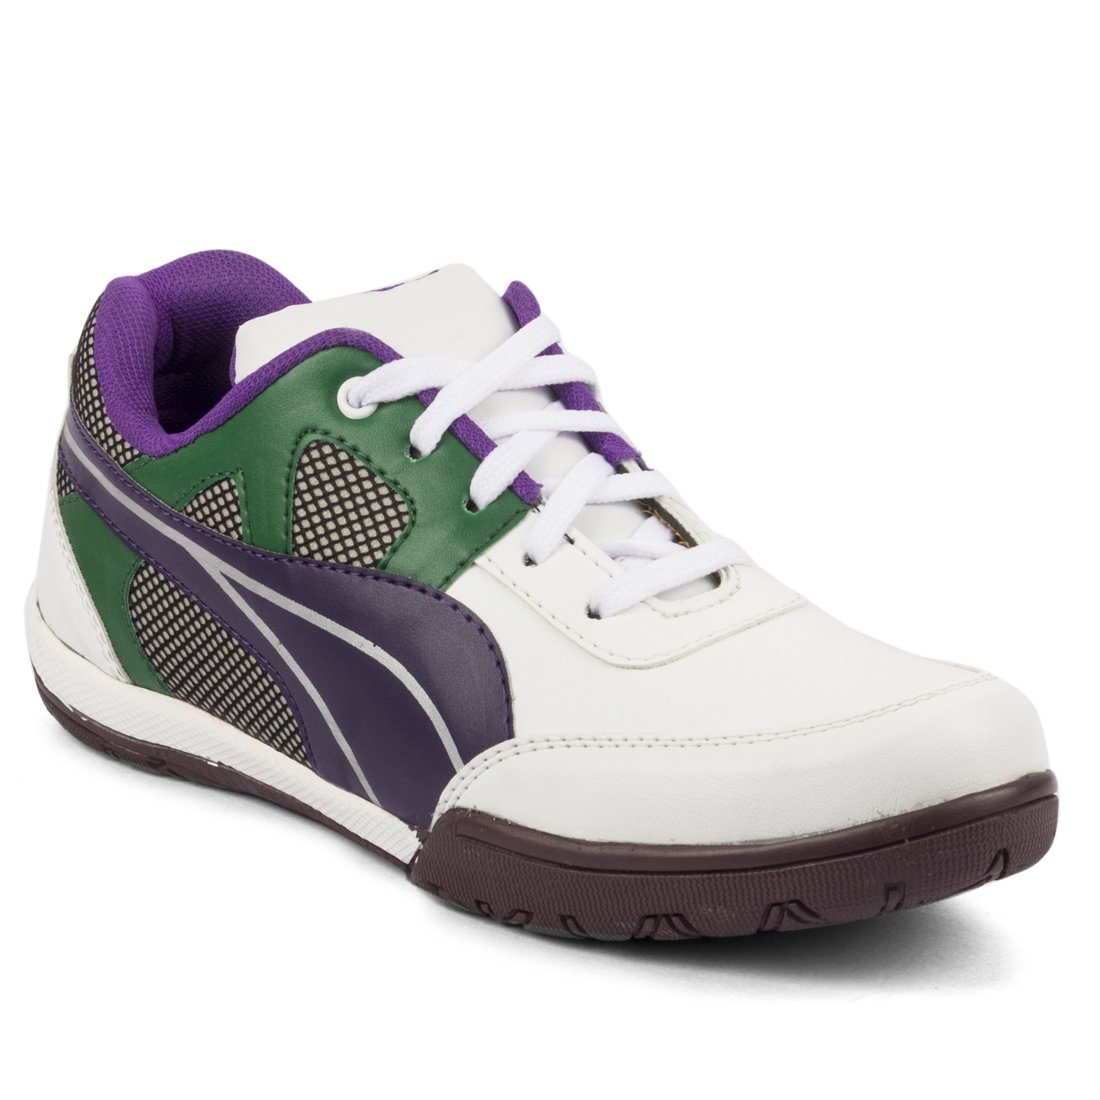 Shoes 24-RS-02413-3 at Amazon